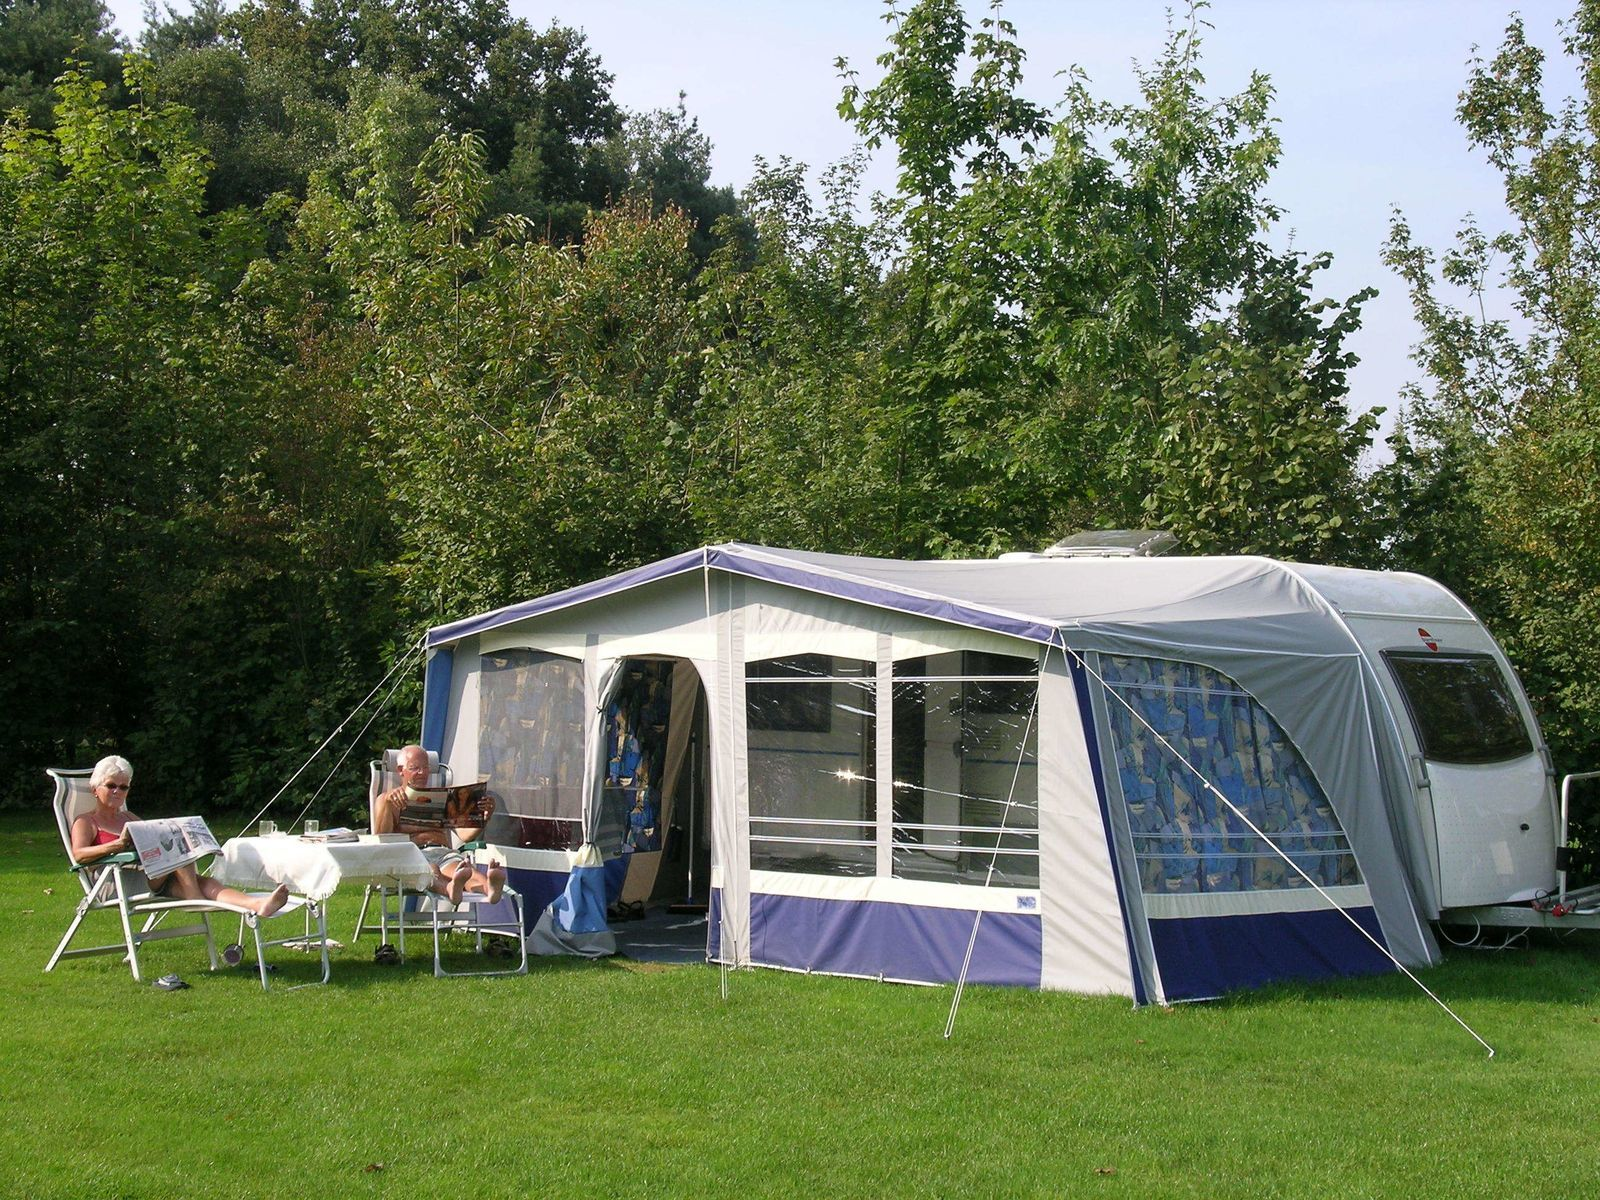 Camping pitch incl. 2 persons, excl. water/electricity